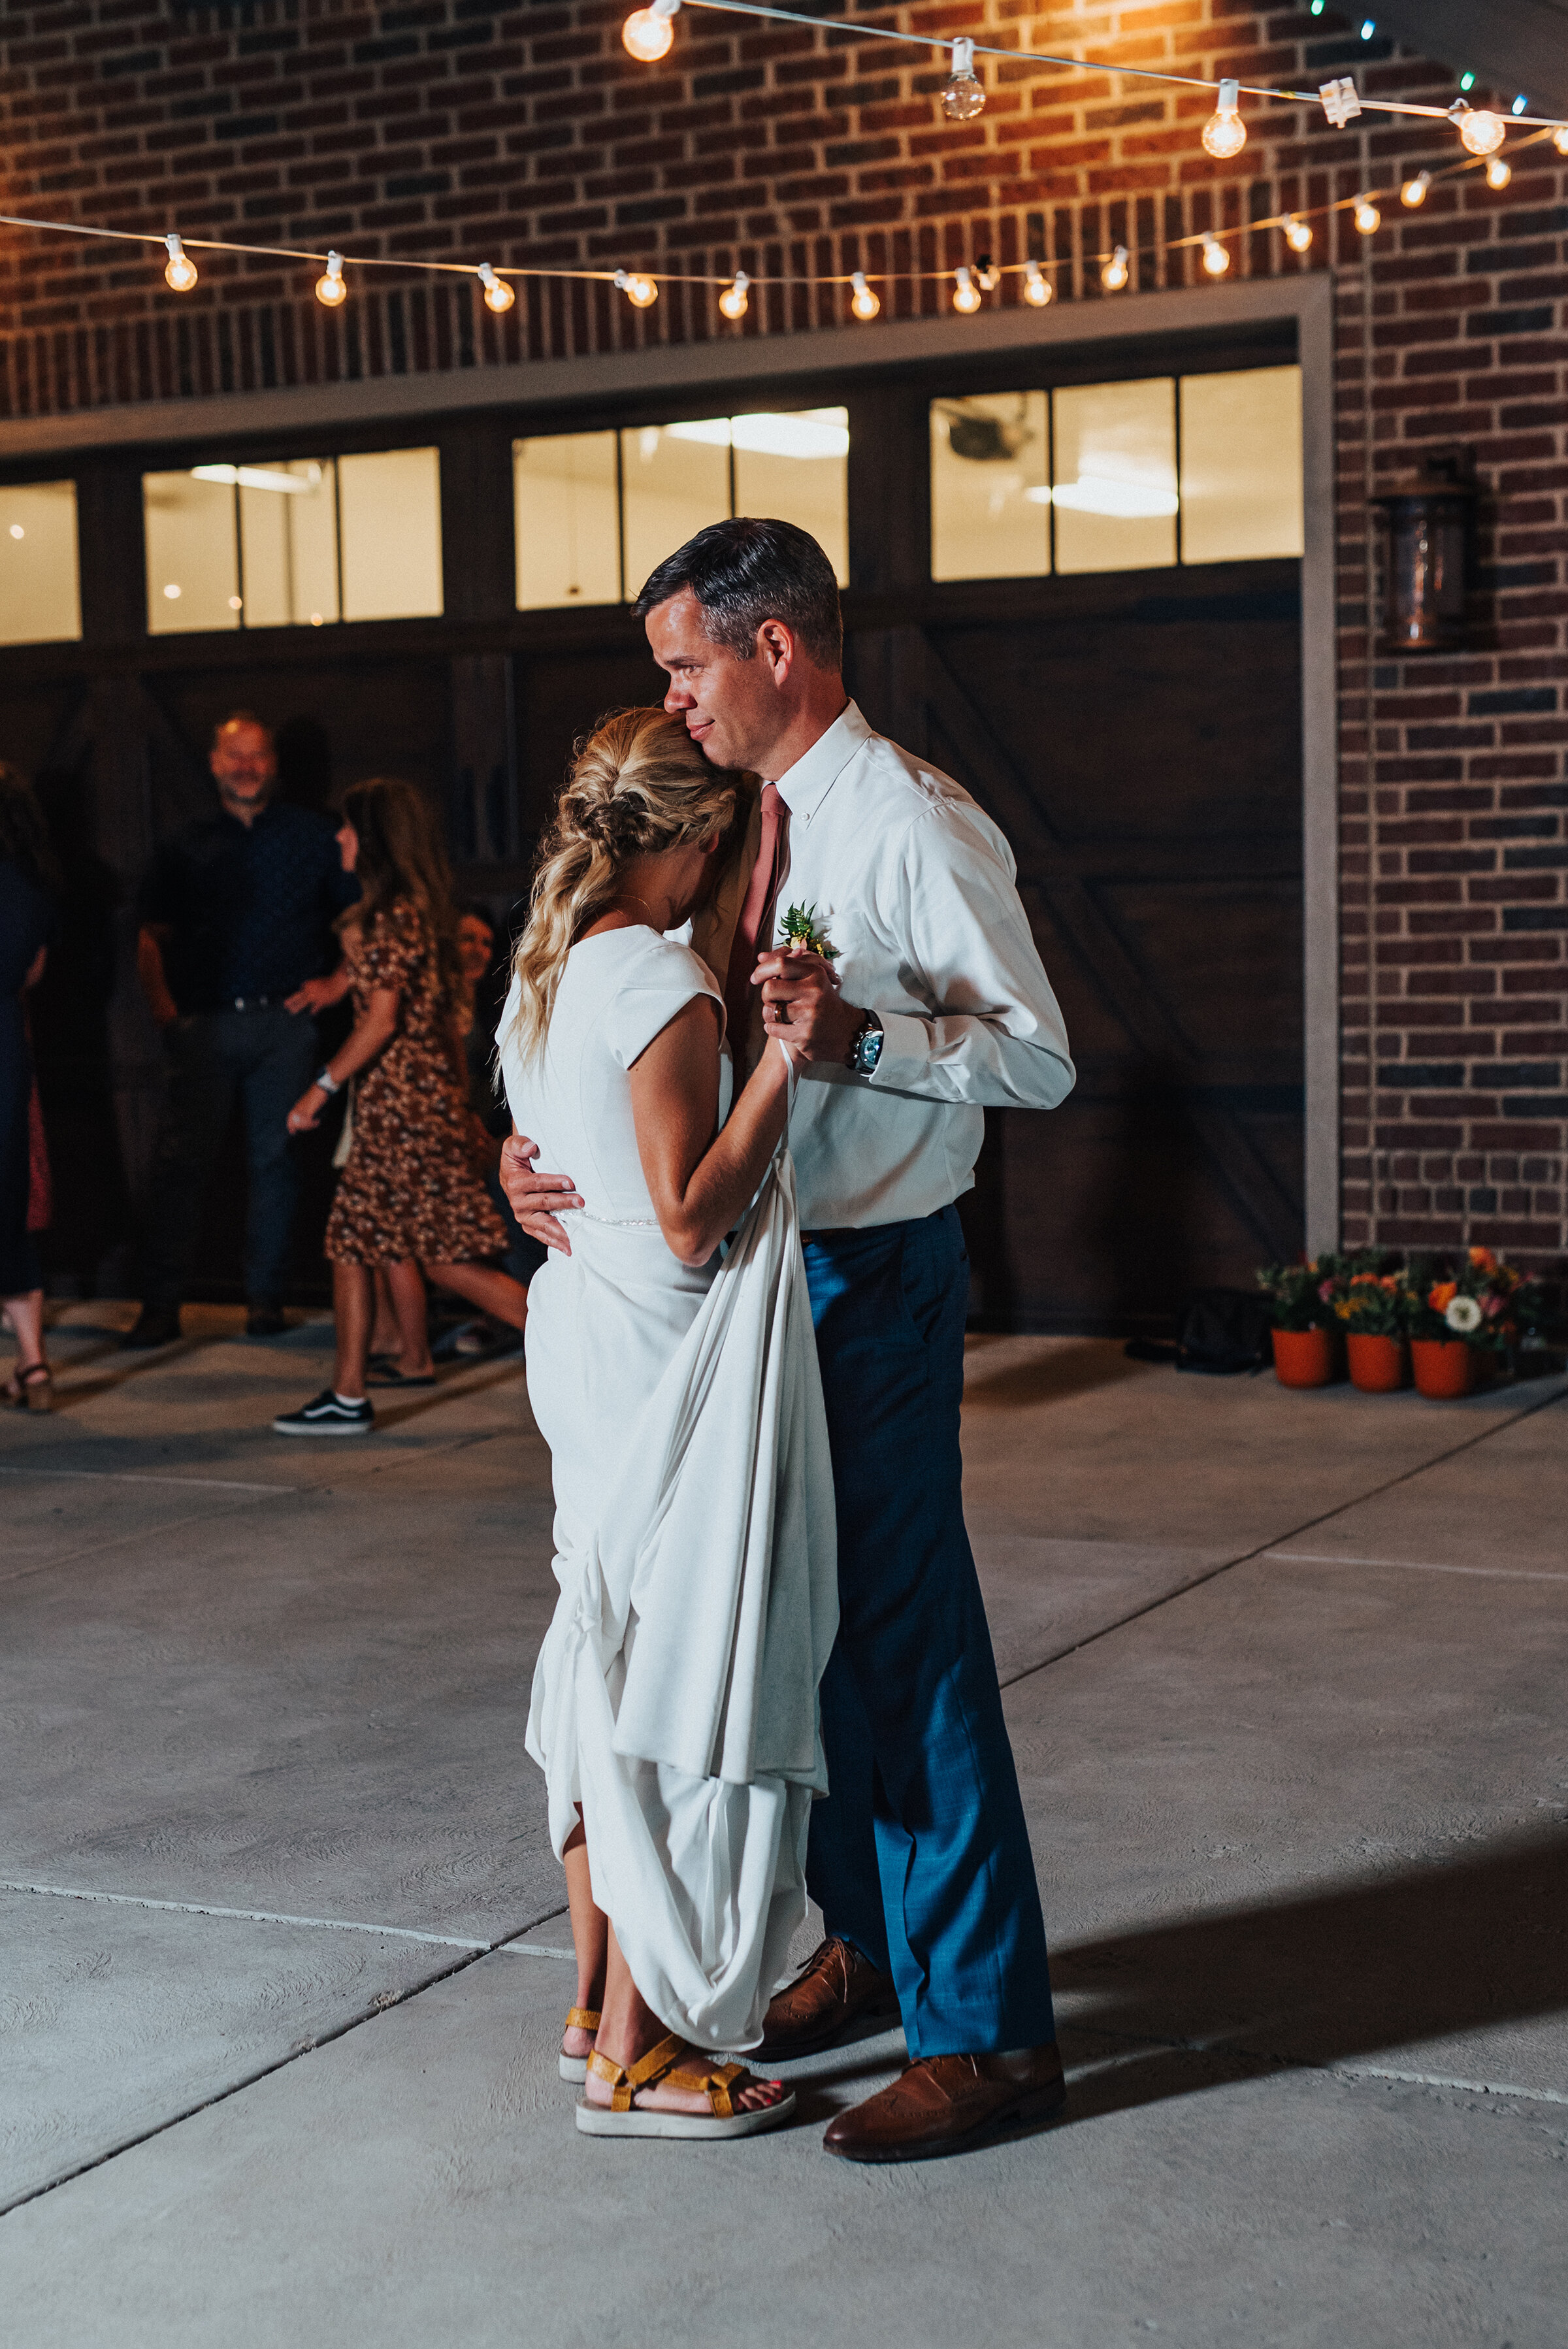 Father of the bride dancing with his daughter at her backyard wedding reception in Park City. Kristi Alyse Photography Logan Utah photographer Park City wedding photographer Drive-Thru wedding COVID wedding neon signs socially distant wedding bride and groom father of the bride dance #kristialysephotography #weddingphotographer #utahweddings #parkcity #utahbrides #drivethruwedding #covidwedding #LoganUtahphotographer #utahweddingphotographer #fatherofthebride